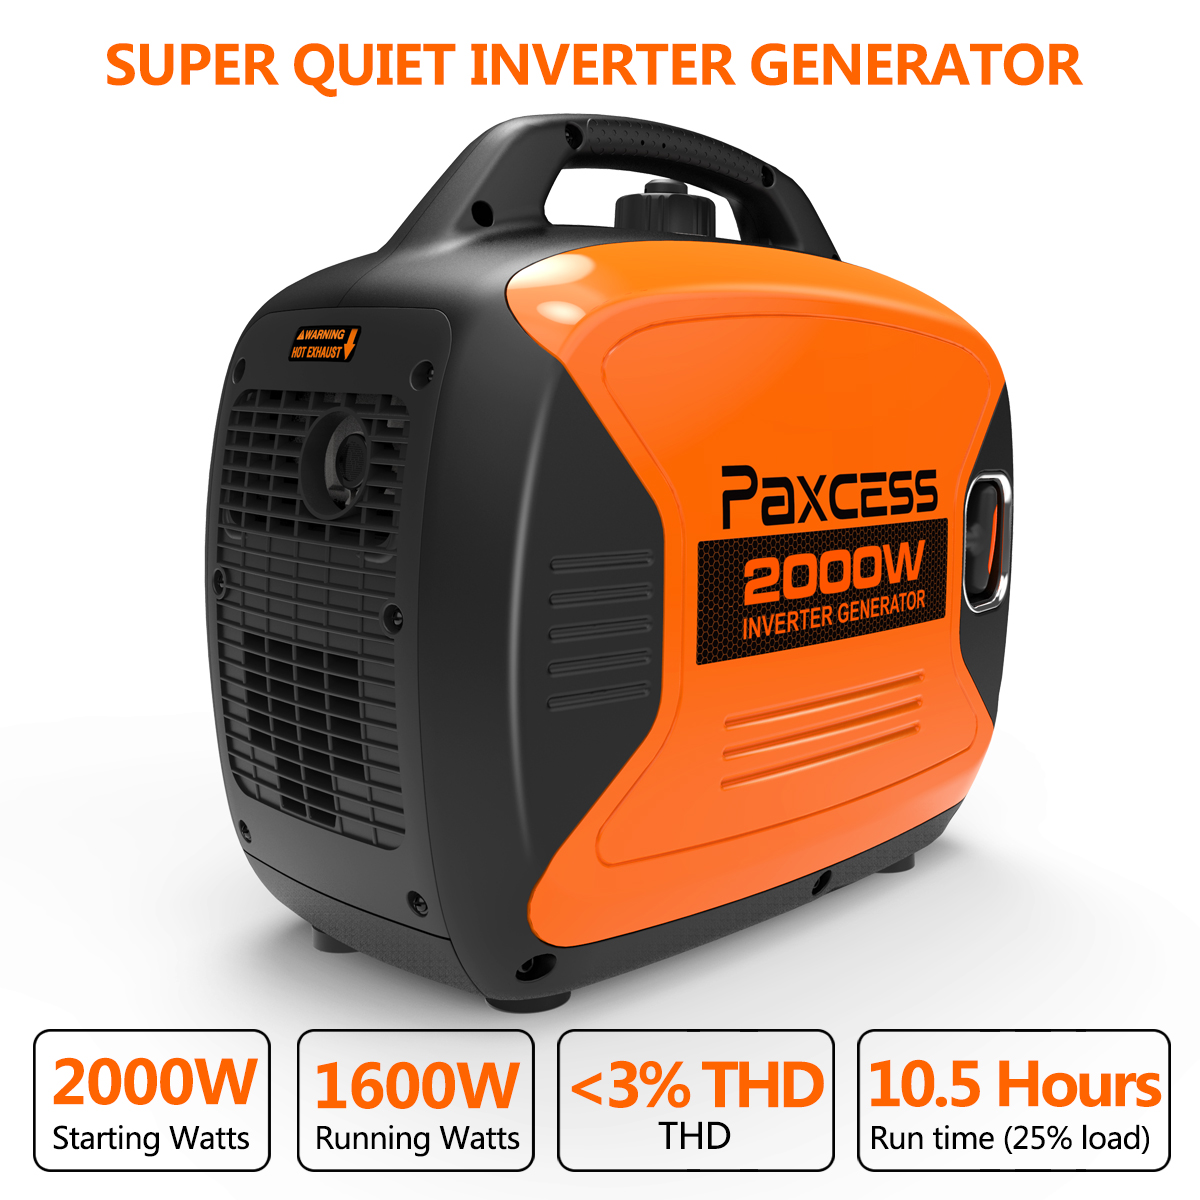 Paxcess 2000 Watts Portable Generator RV Ready With Parallel Capability, Eco-Mode, CARB Complaint, 120V 30A/20A AC Outlet/USB/Cigarette Ports/12V DC Output